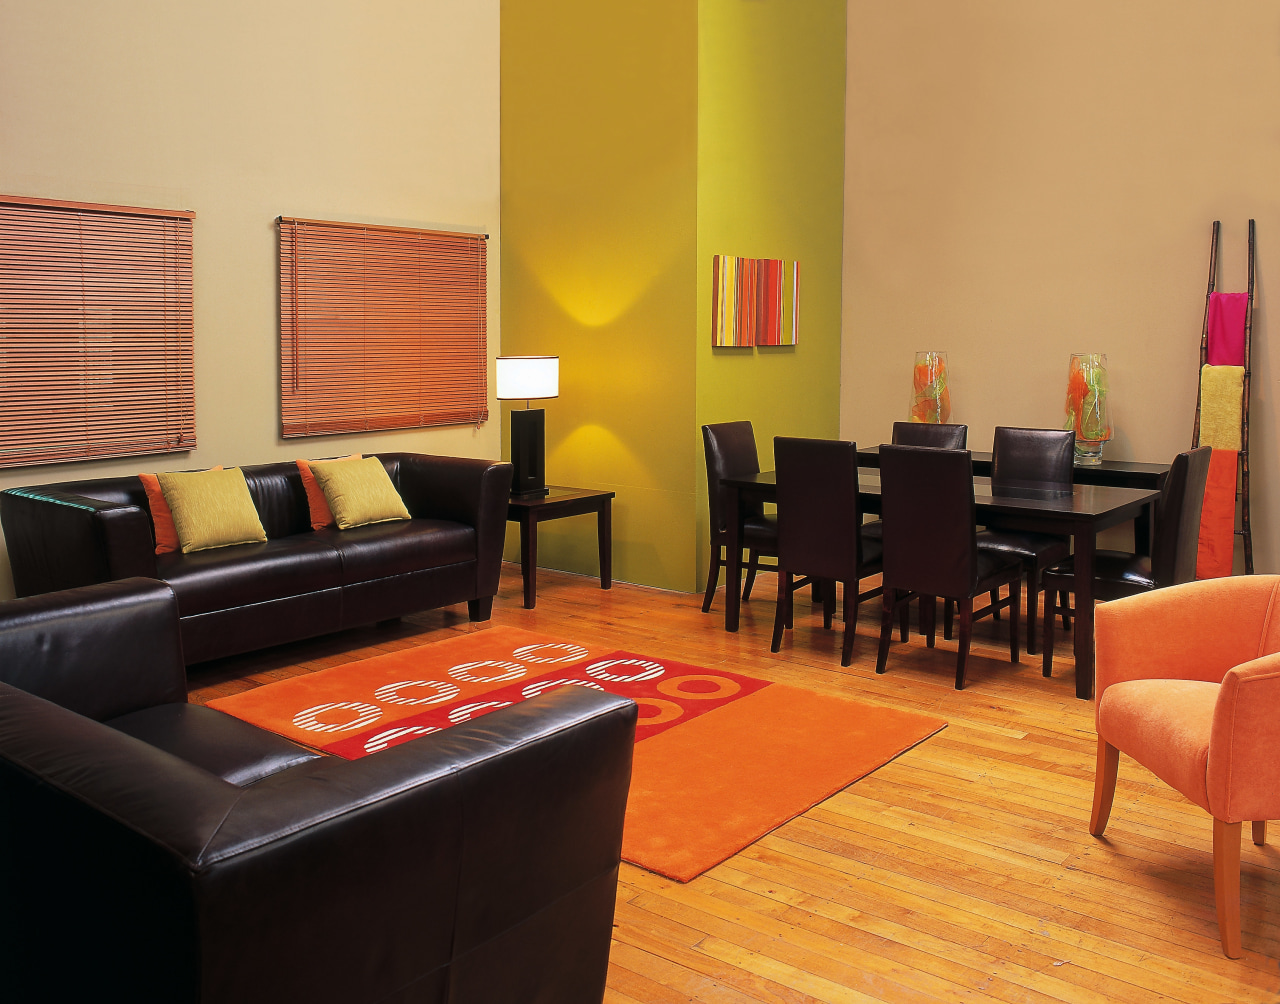 Interior view of lounge area floor, flooring, furniture, interior design, living room, room, suite, table, orange, black